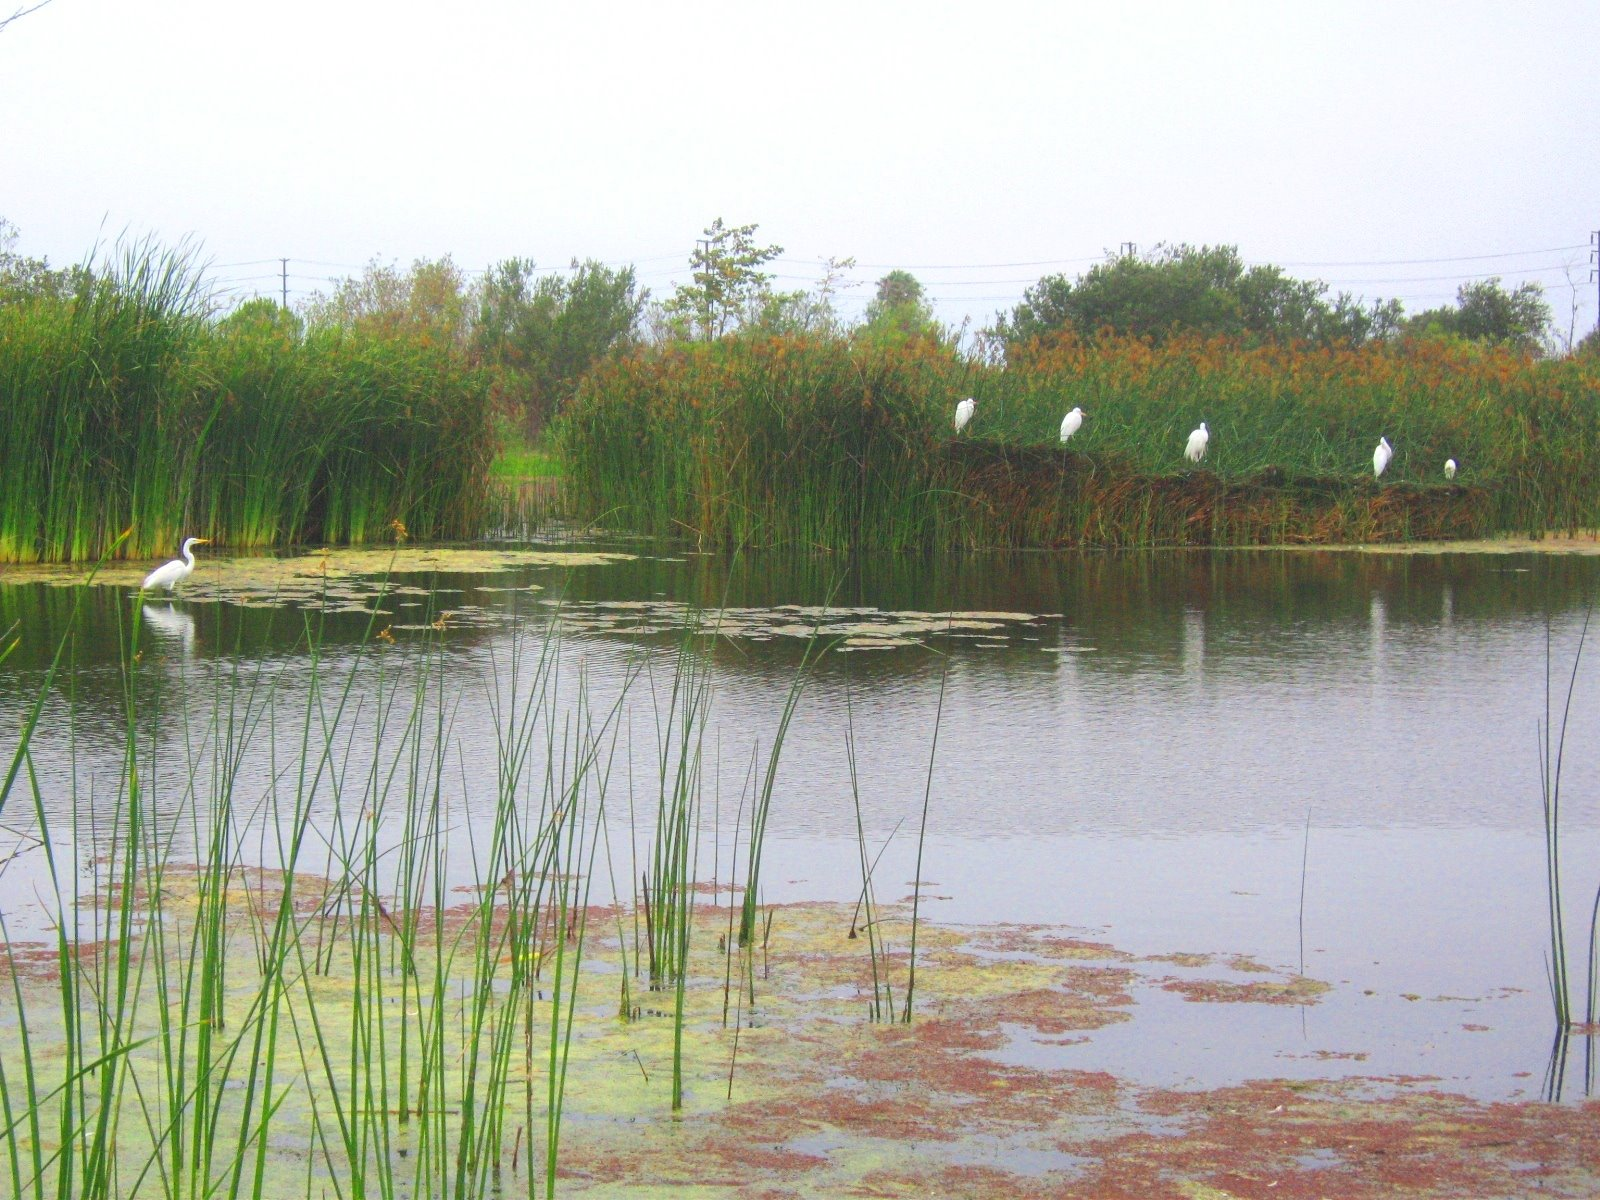 Ballona Wetlands. Image courtesy of Southern California Wetlands Recovery Project (WRP)